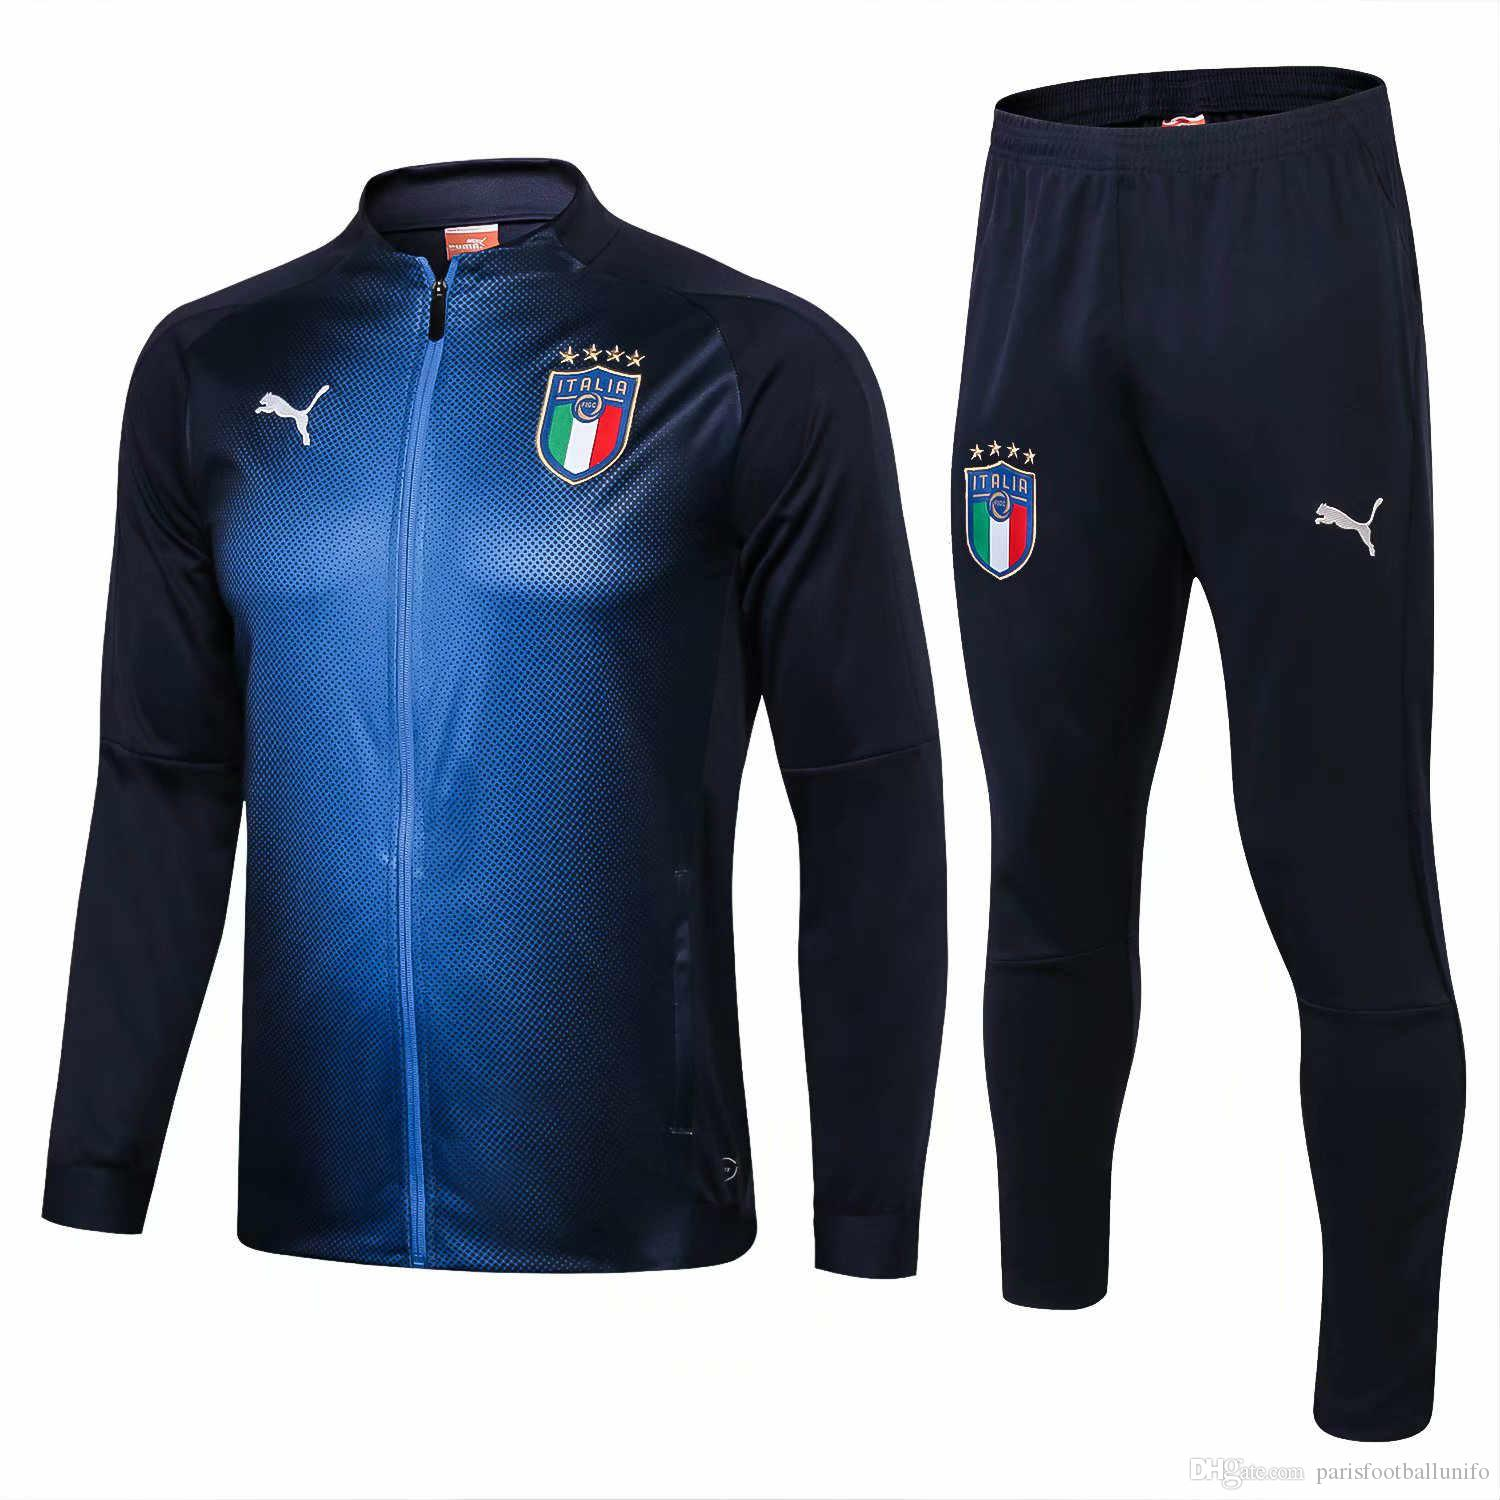 Acquista 2018 2019 Giubbotto Da Tuta Italian Set Giacca Da Calcio TRAINING  SUIT Kit Giacca It Chandal Set Survêtement Italia Football SPORTSWEAR Tuta  Yid A ... 452ab5fe15c